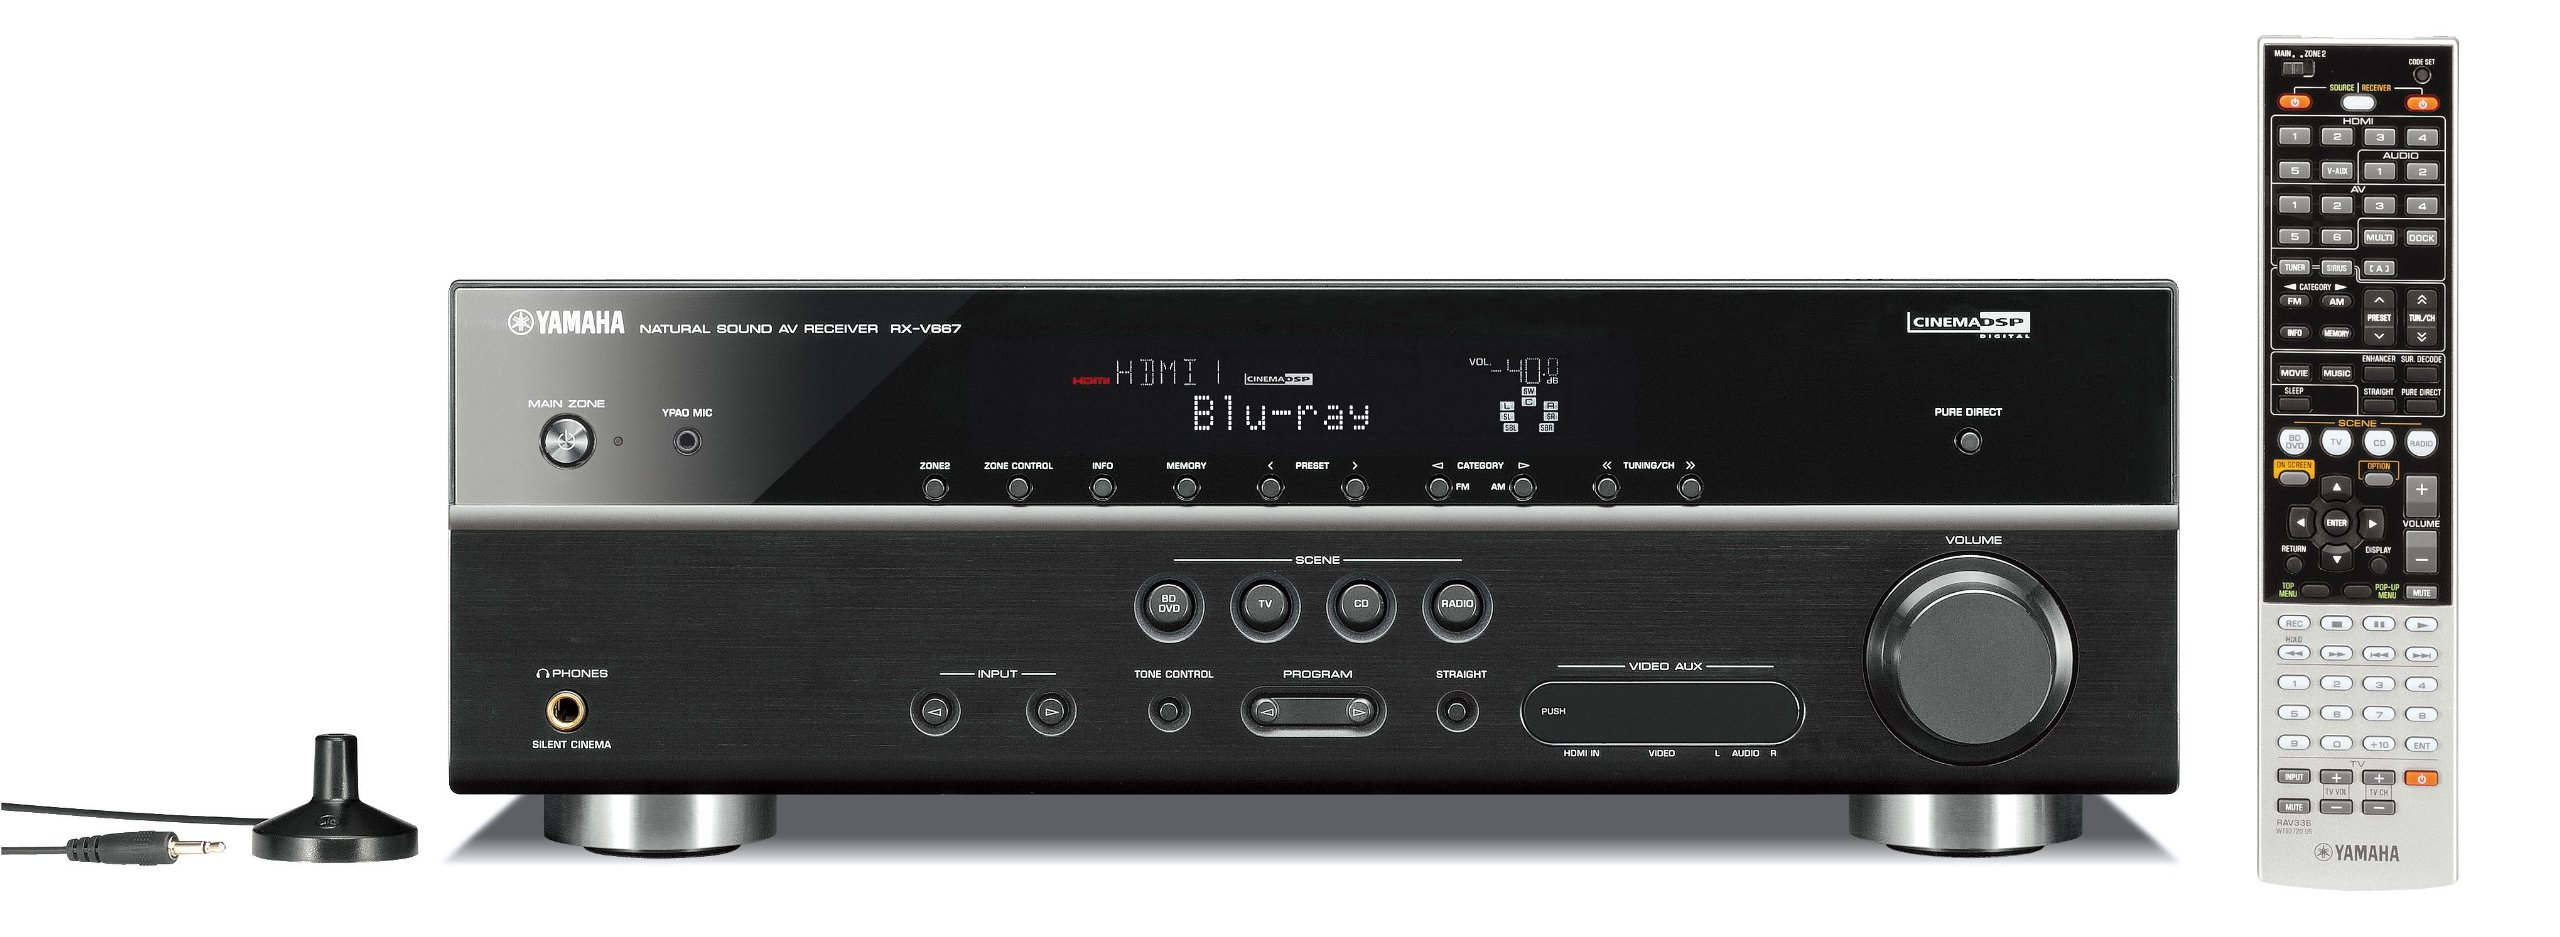 Yamaha RX-V667 7.2-Channel Home Theater Receiver (OLD VERSION) (Discontinued by Manufacturer) by Yamaha